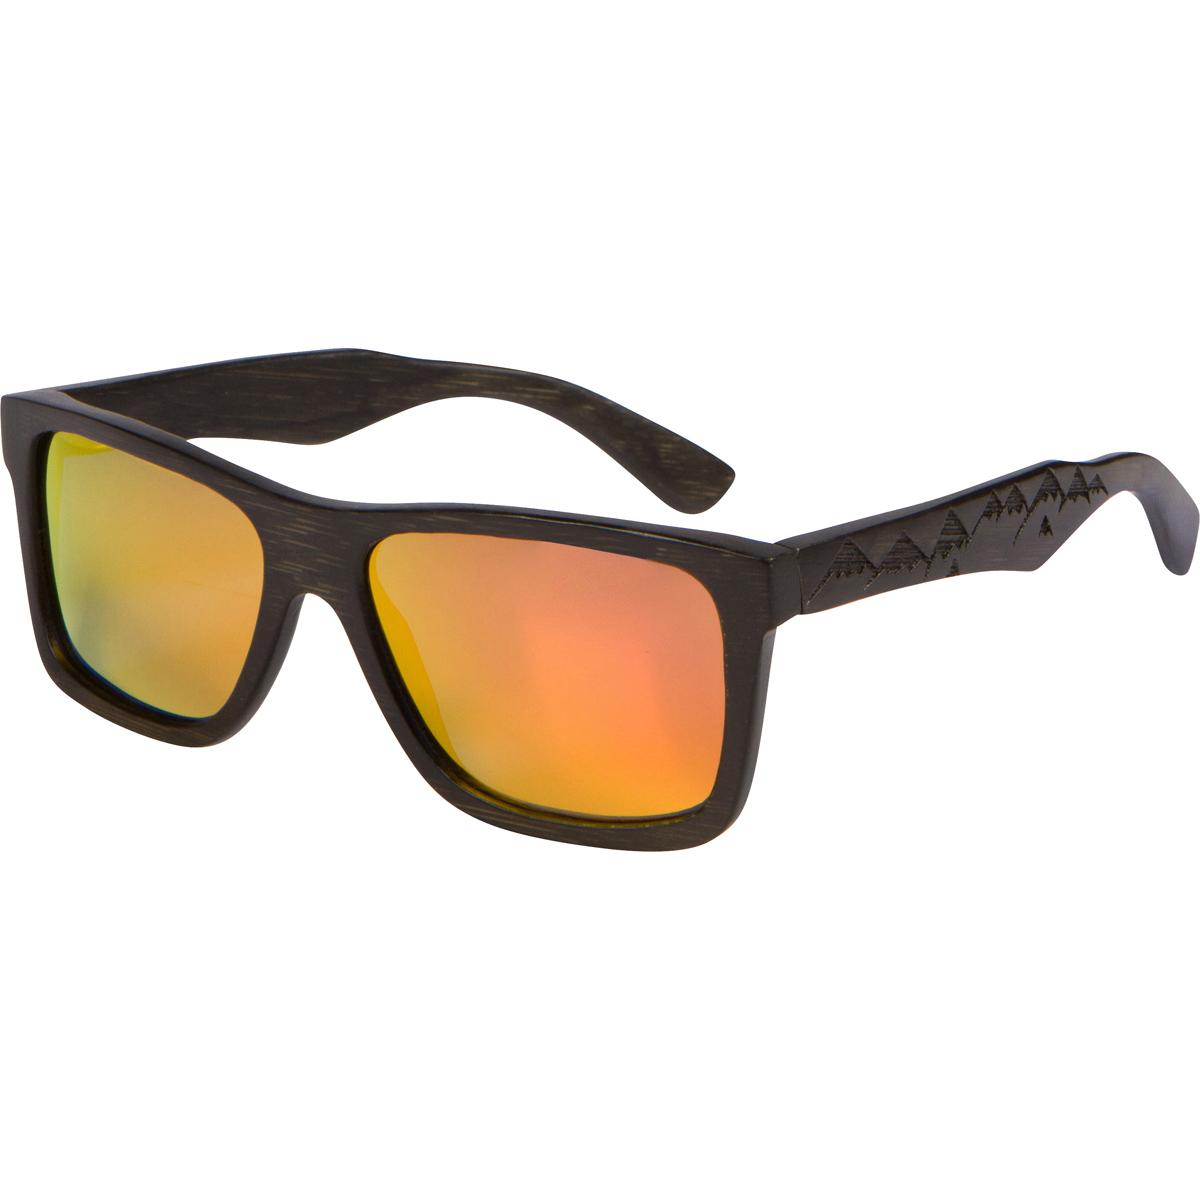 Lightweight Bamboo Wood Sunglasses